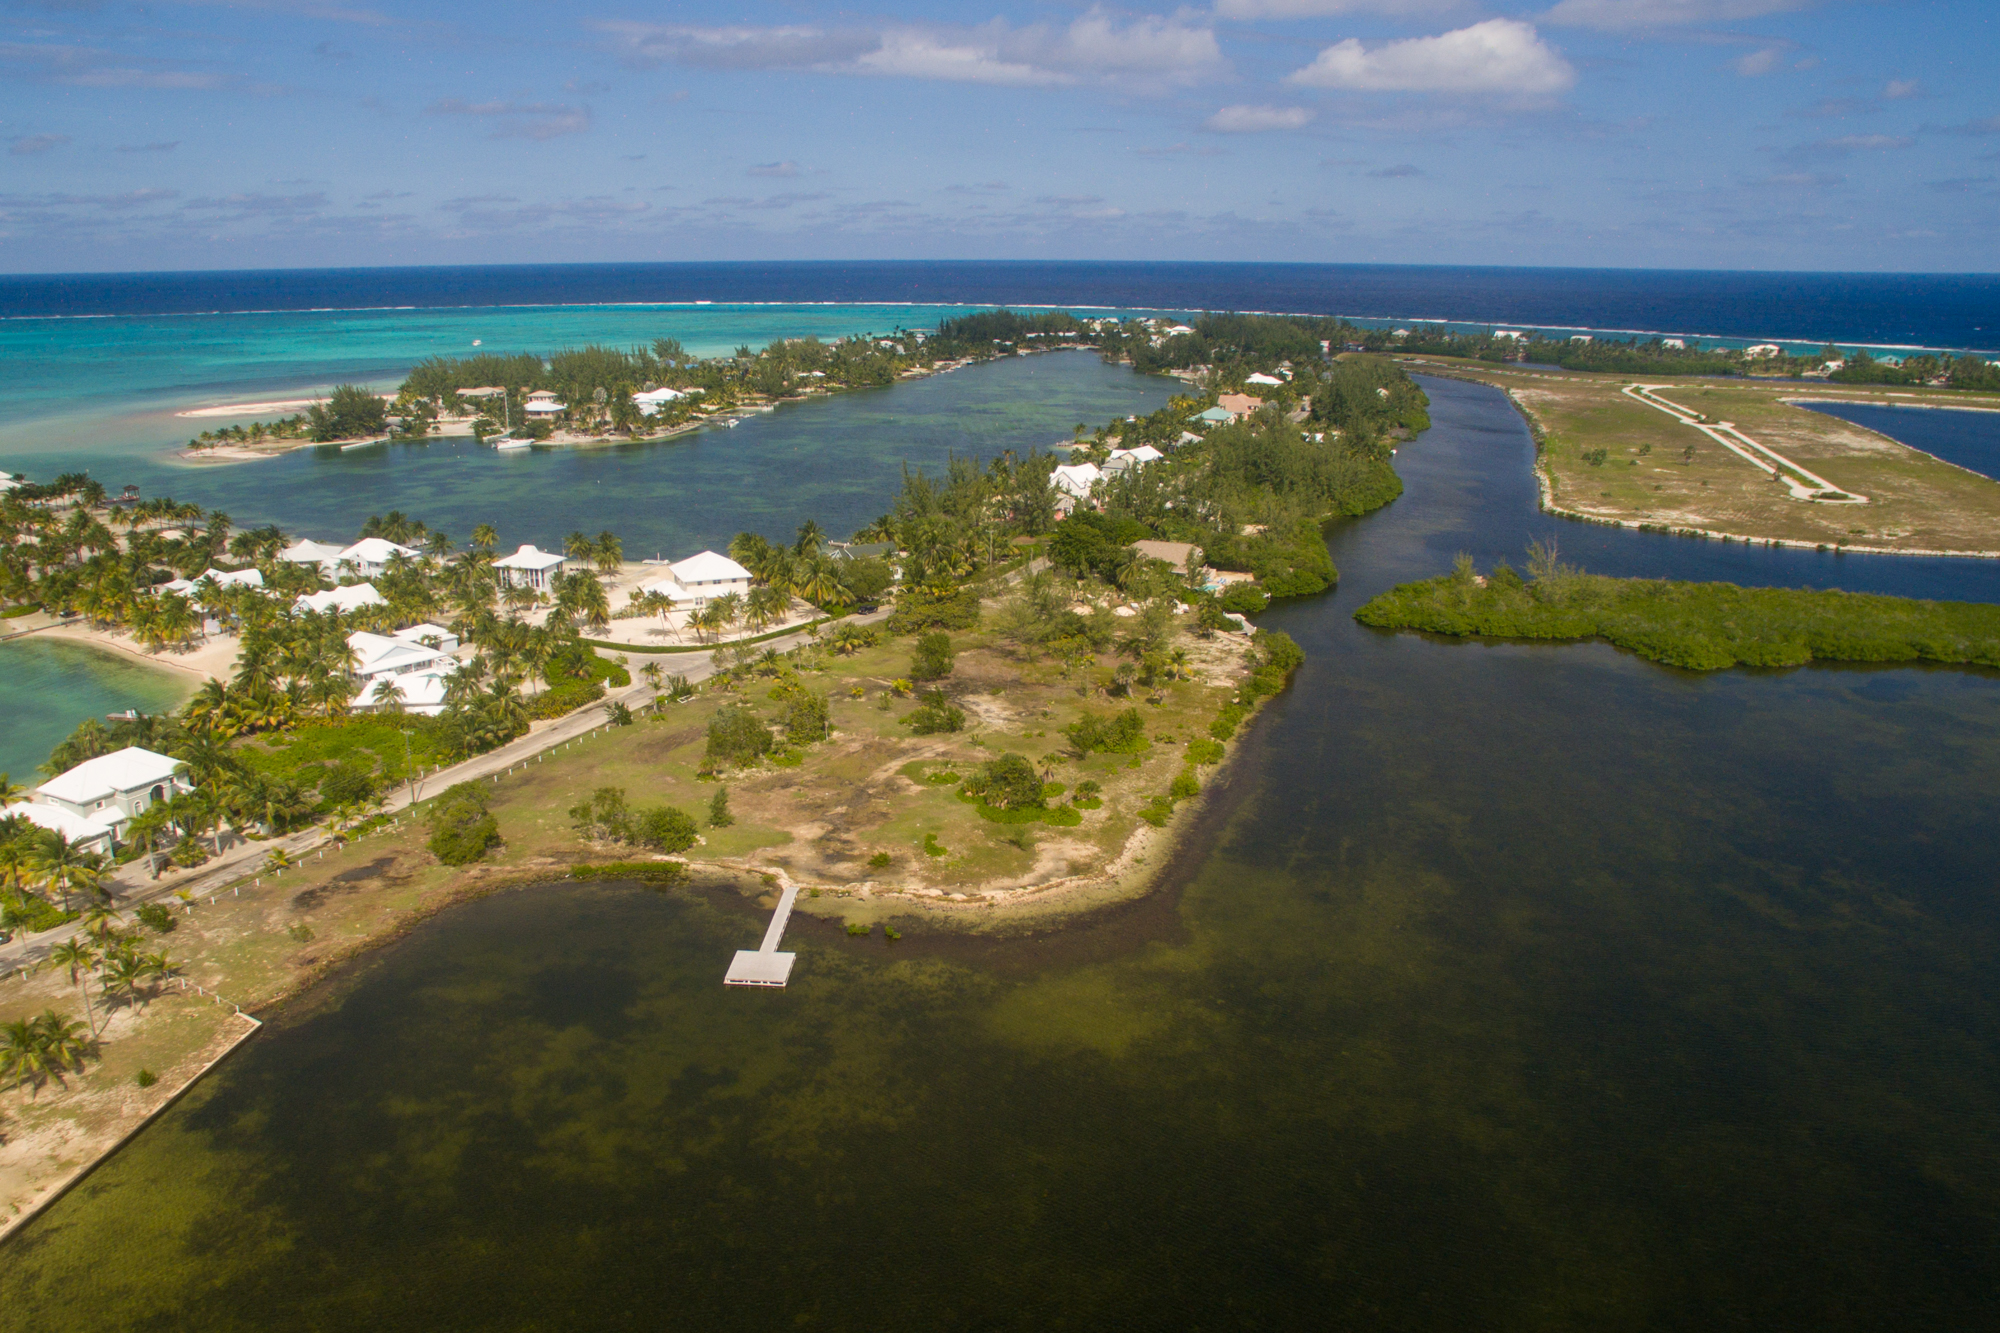 Land for Sale at Little Sound Lot in Cayman Kai Rum Point, Cayman Islands